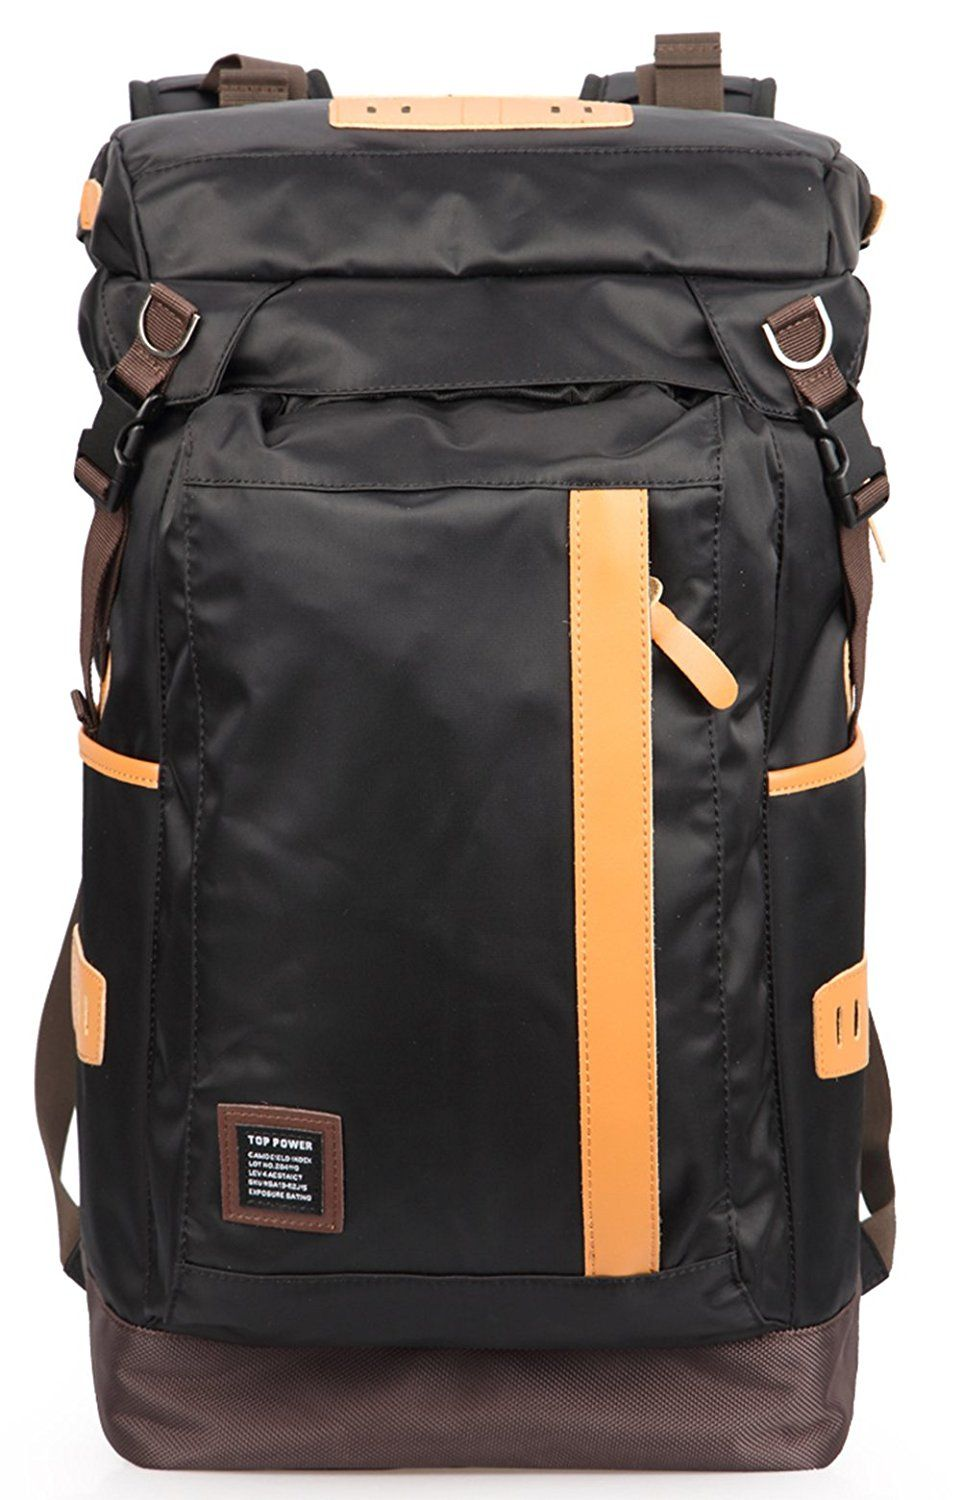 a87126806f6c 35L Travel Backpack By NKTM